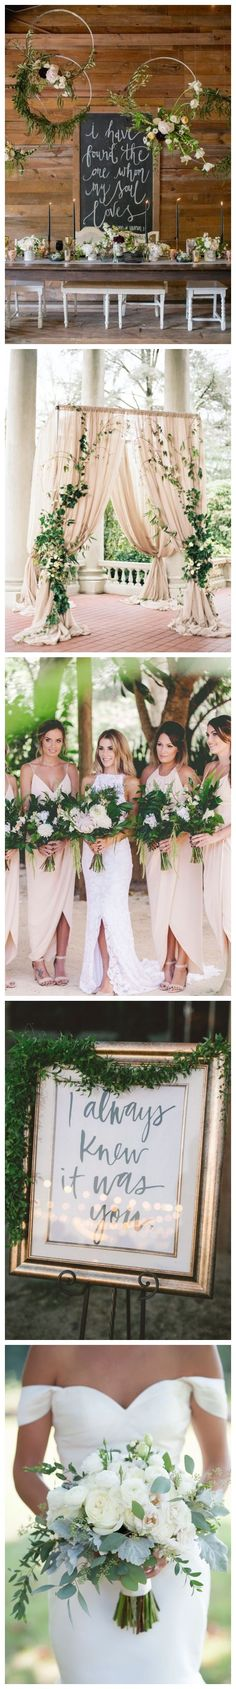 Greenery Wedding Color ideas